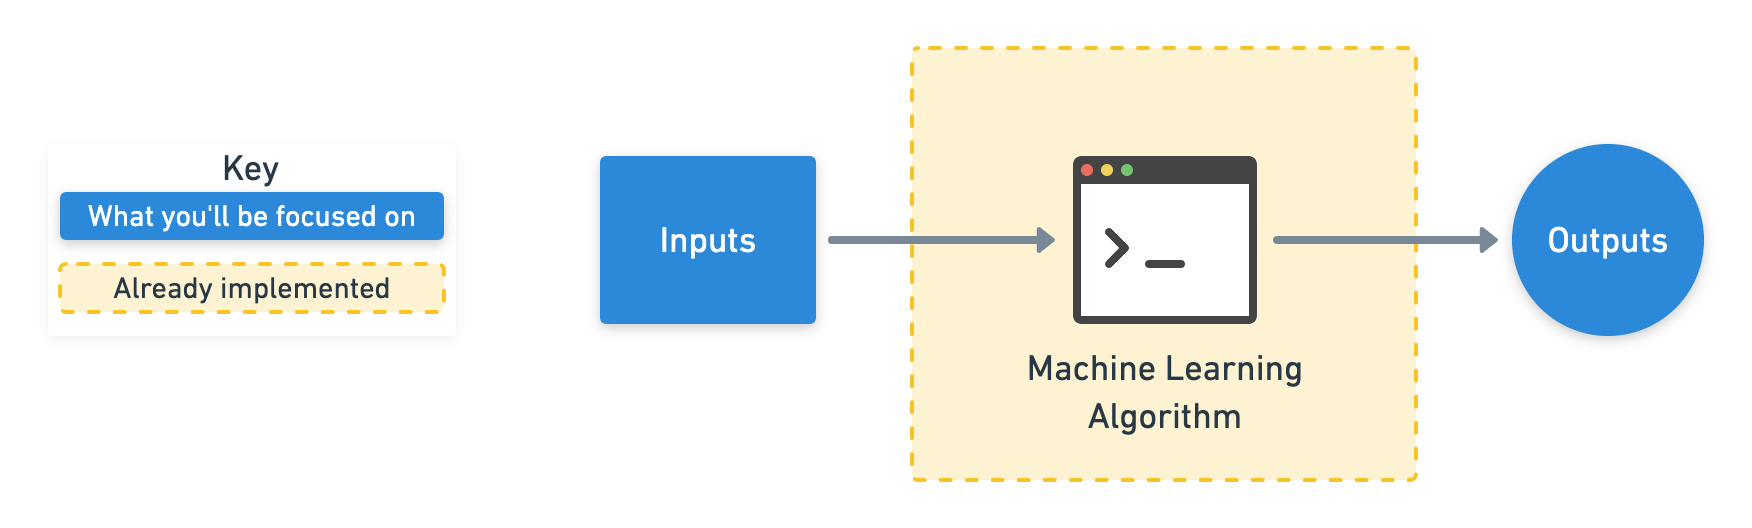 diagram showing inputs and outputs to a machine learning algorithm with emphasis on inputs and outputs being the focus